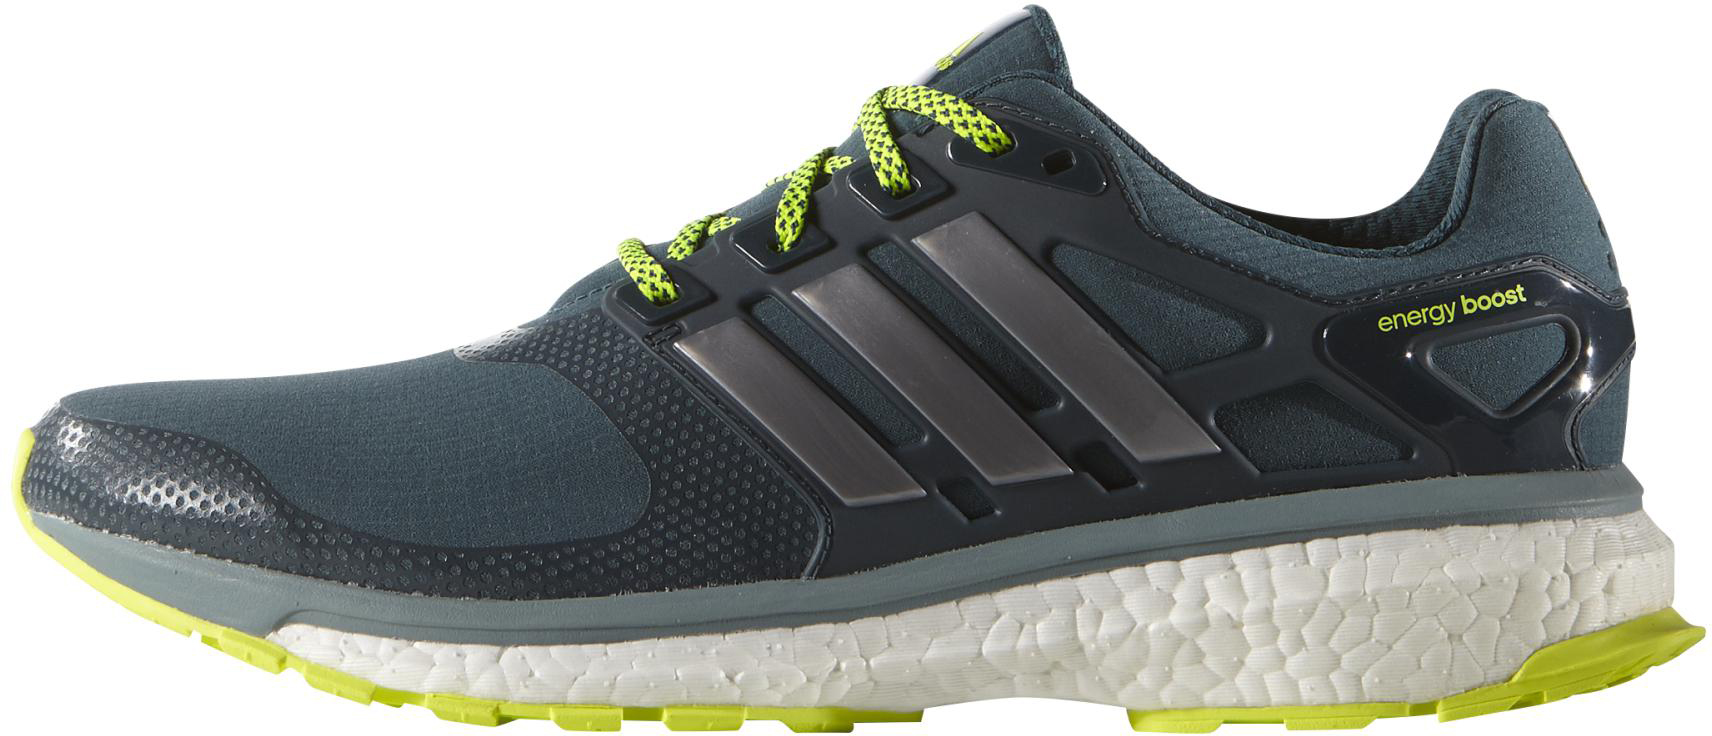 Wiggle | adidas Energy Boost 2 ATR Shoes AW15 | Running Shoes